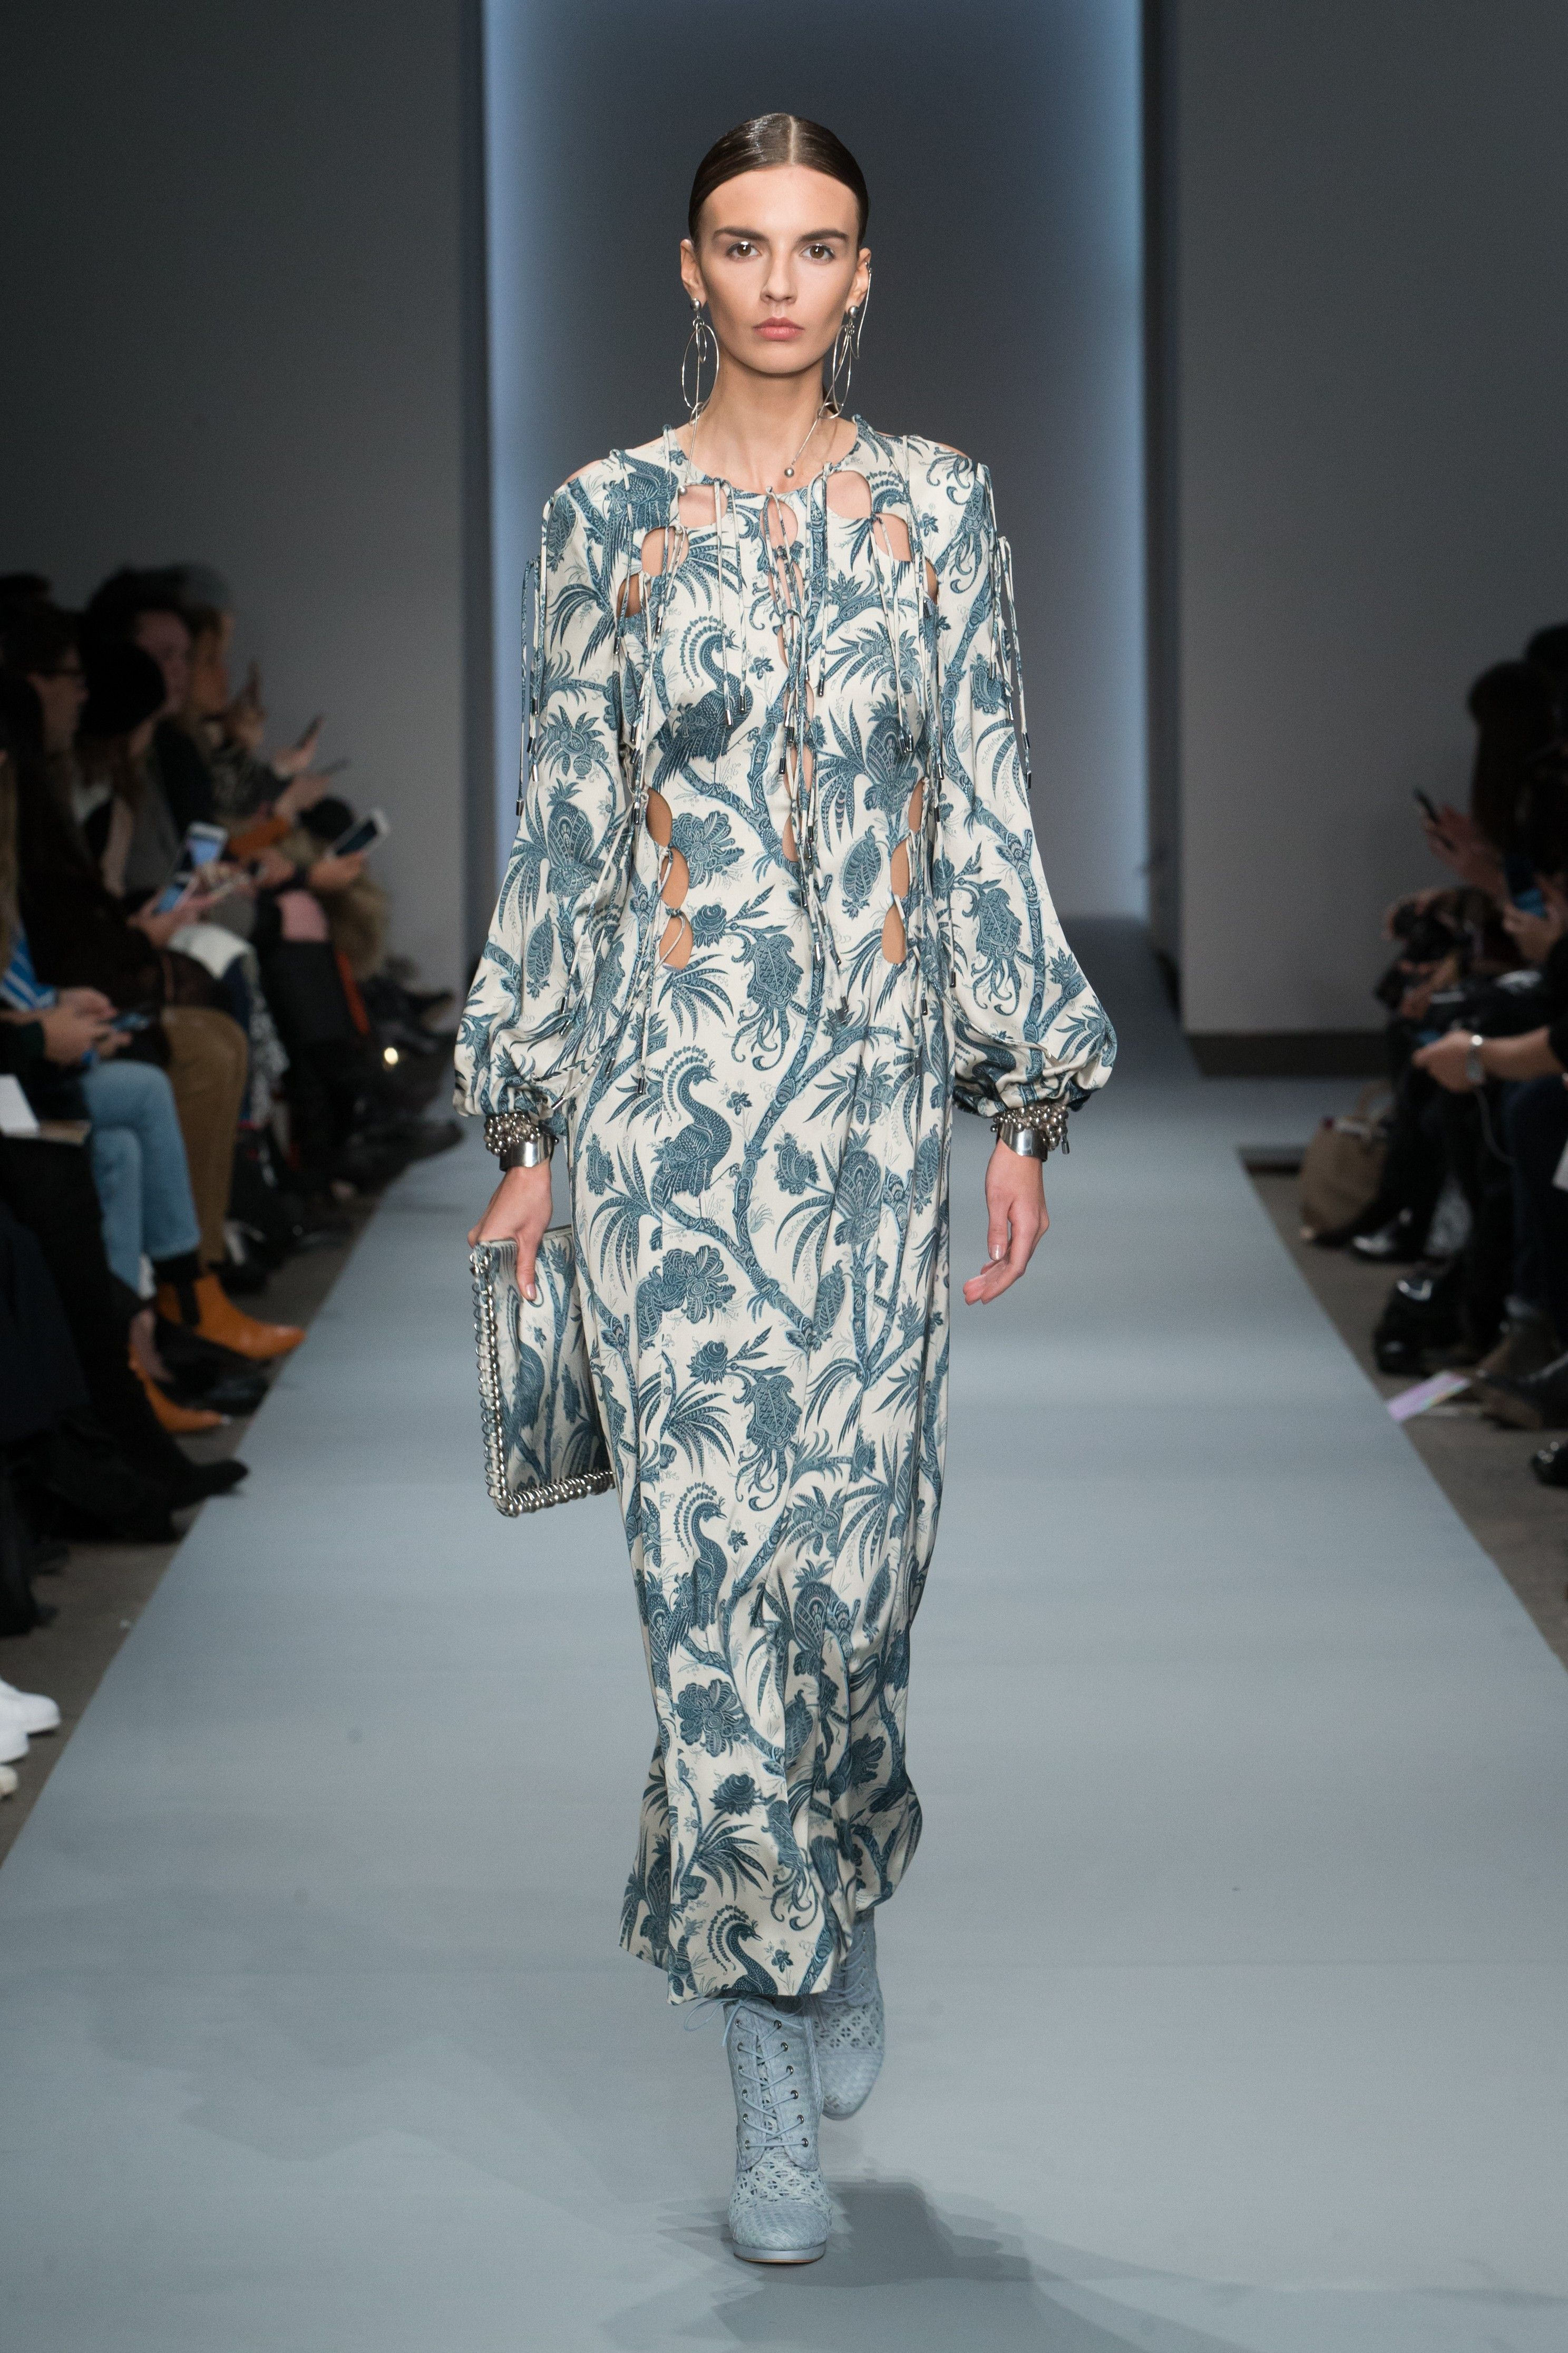 c3b47c8a1dcf How to Mix Prints Like a Pro, Courtesy of Zimmermann via  WhoWhatWear